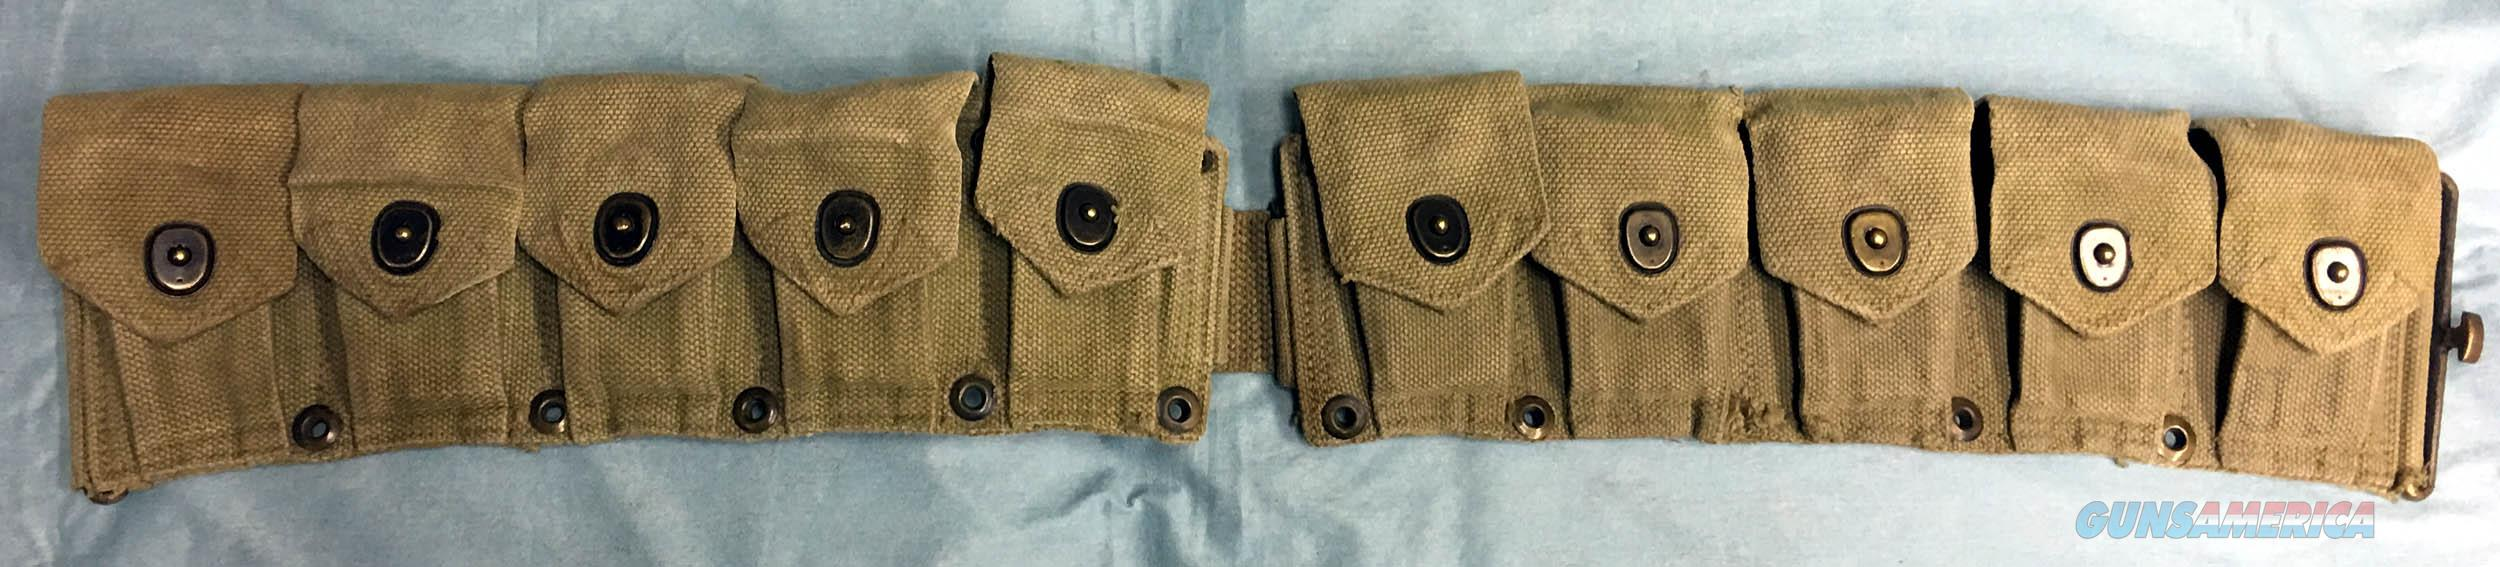 VERY NICE WWII M1 CARTRIDGE/CLIP WEB BELT - 1942  Non-Guns > Military > Web Gear